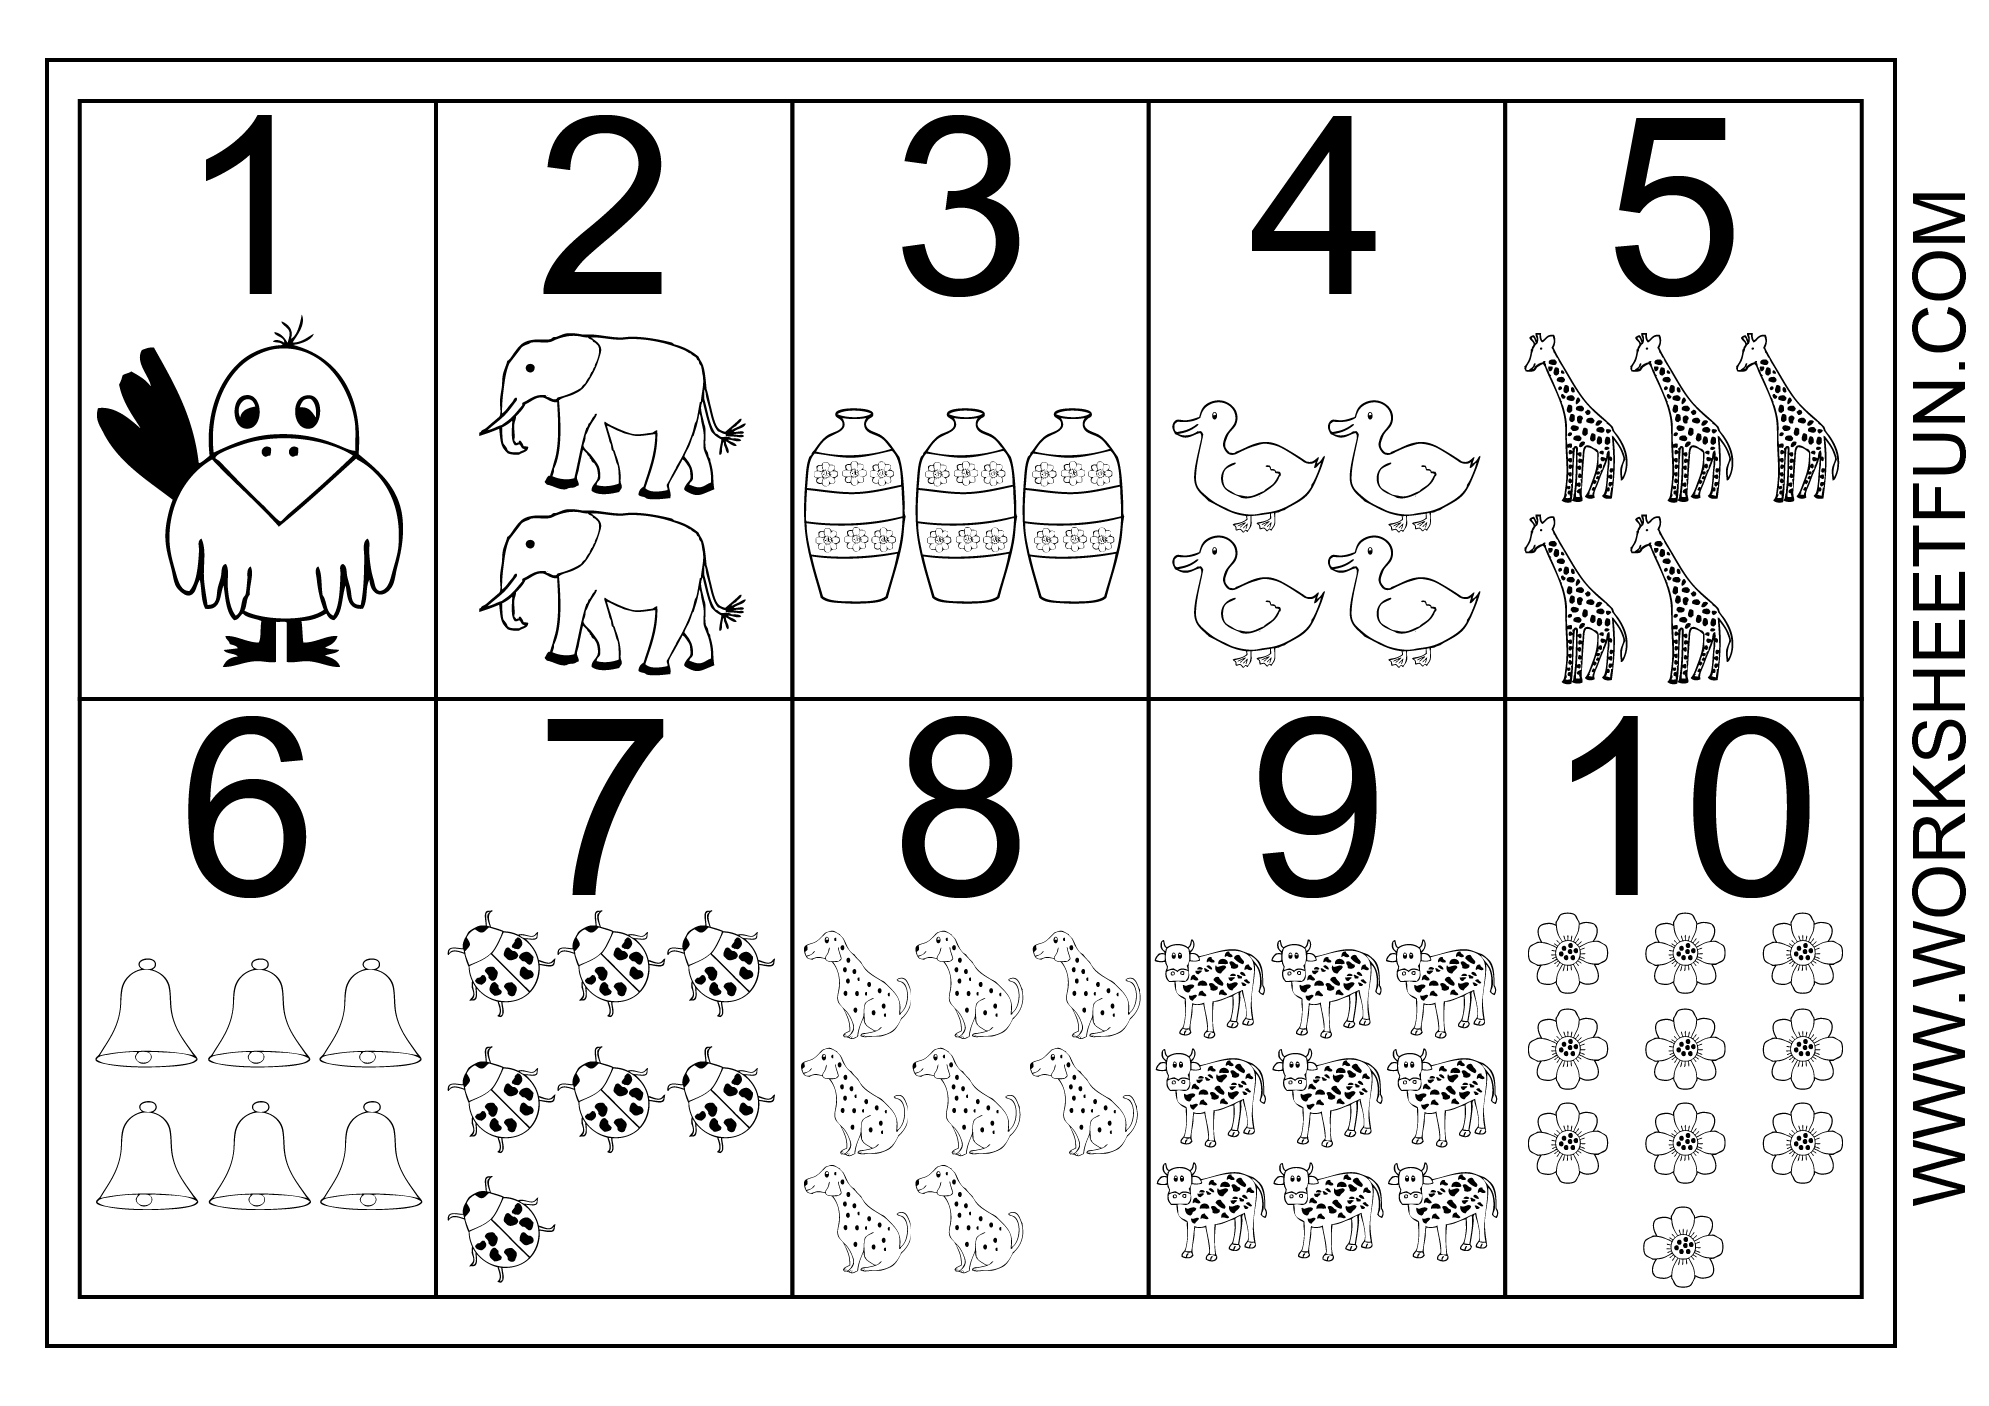 math worksheet : 6 best images of number sheets 1 to 100 printable  kindergarten  : Kindergarten Number Worksheets 1 100